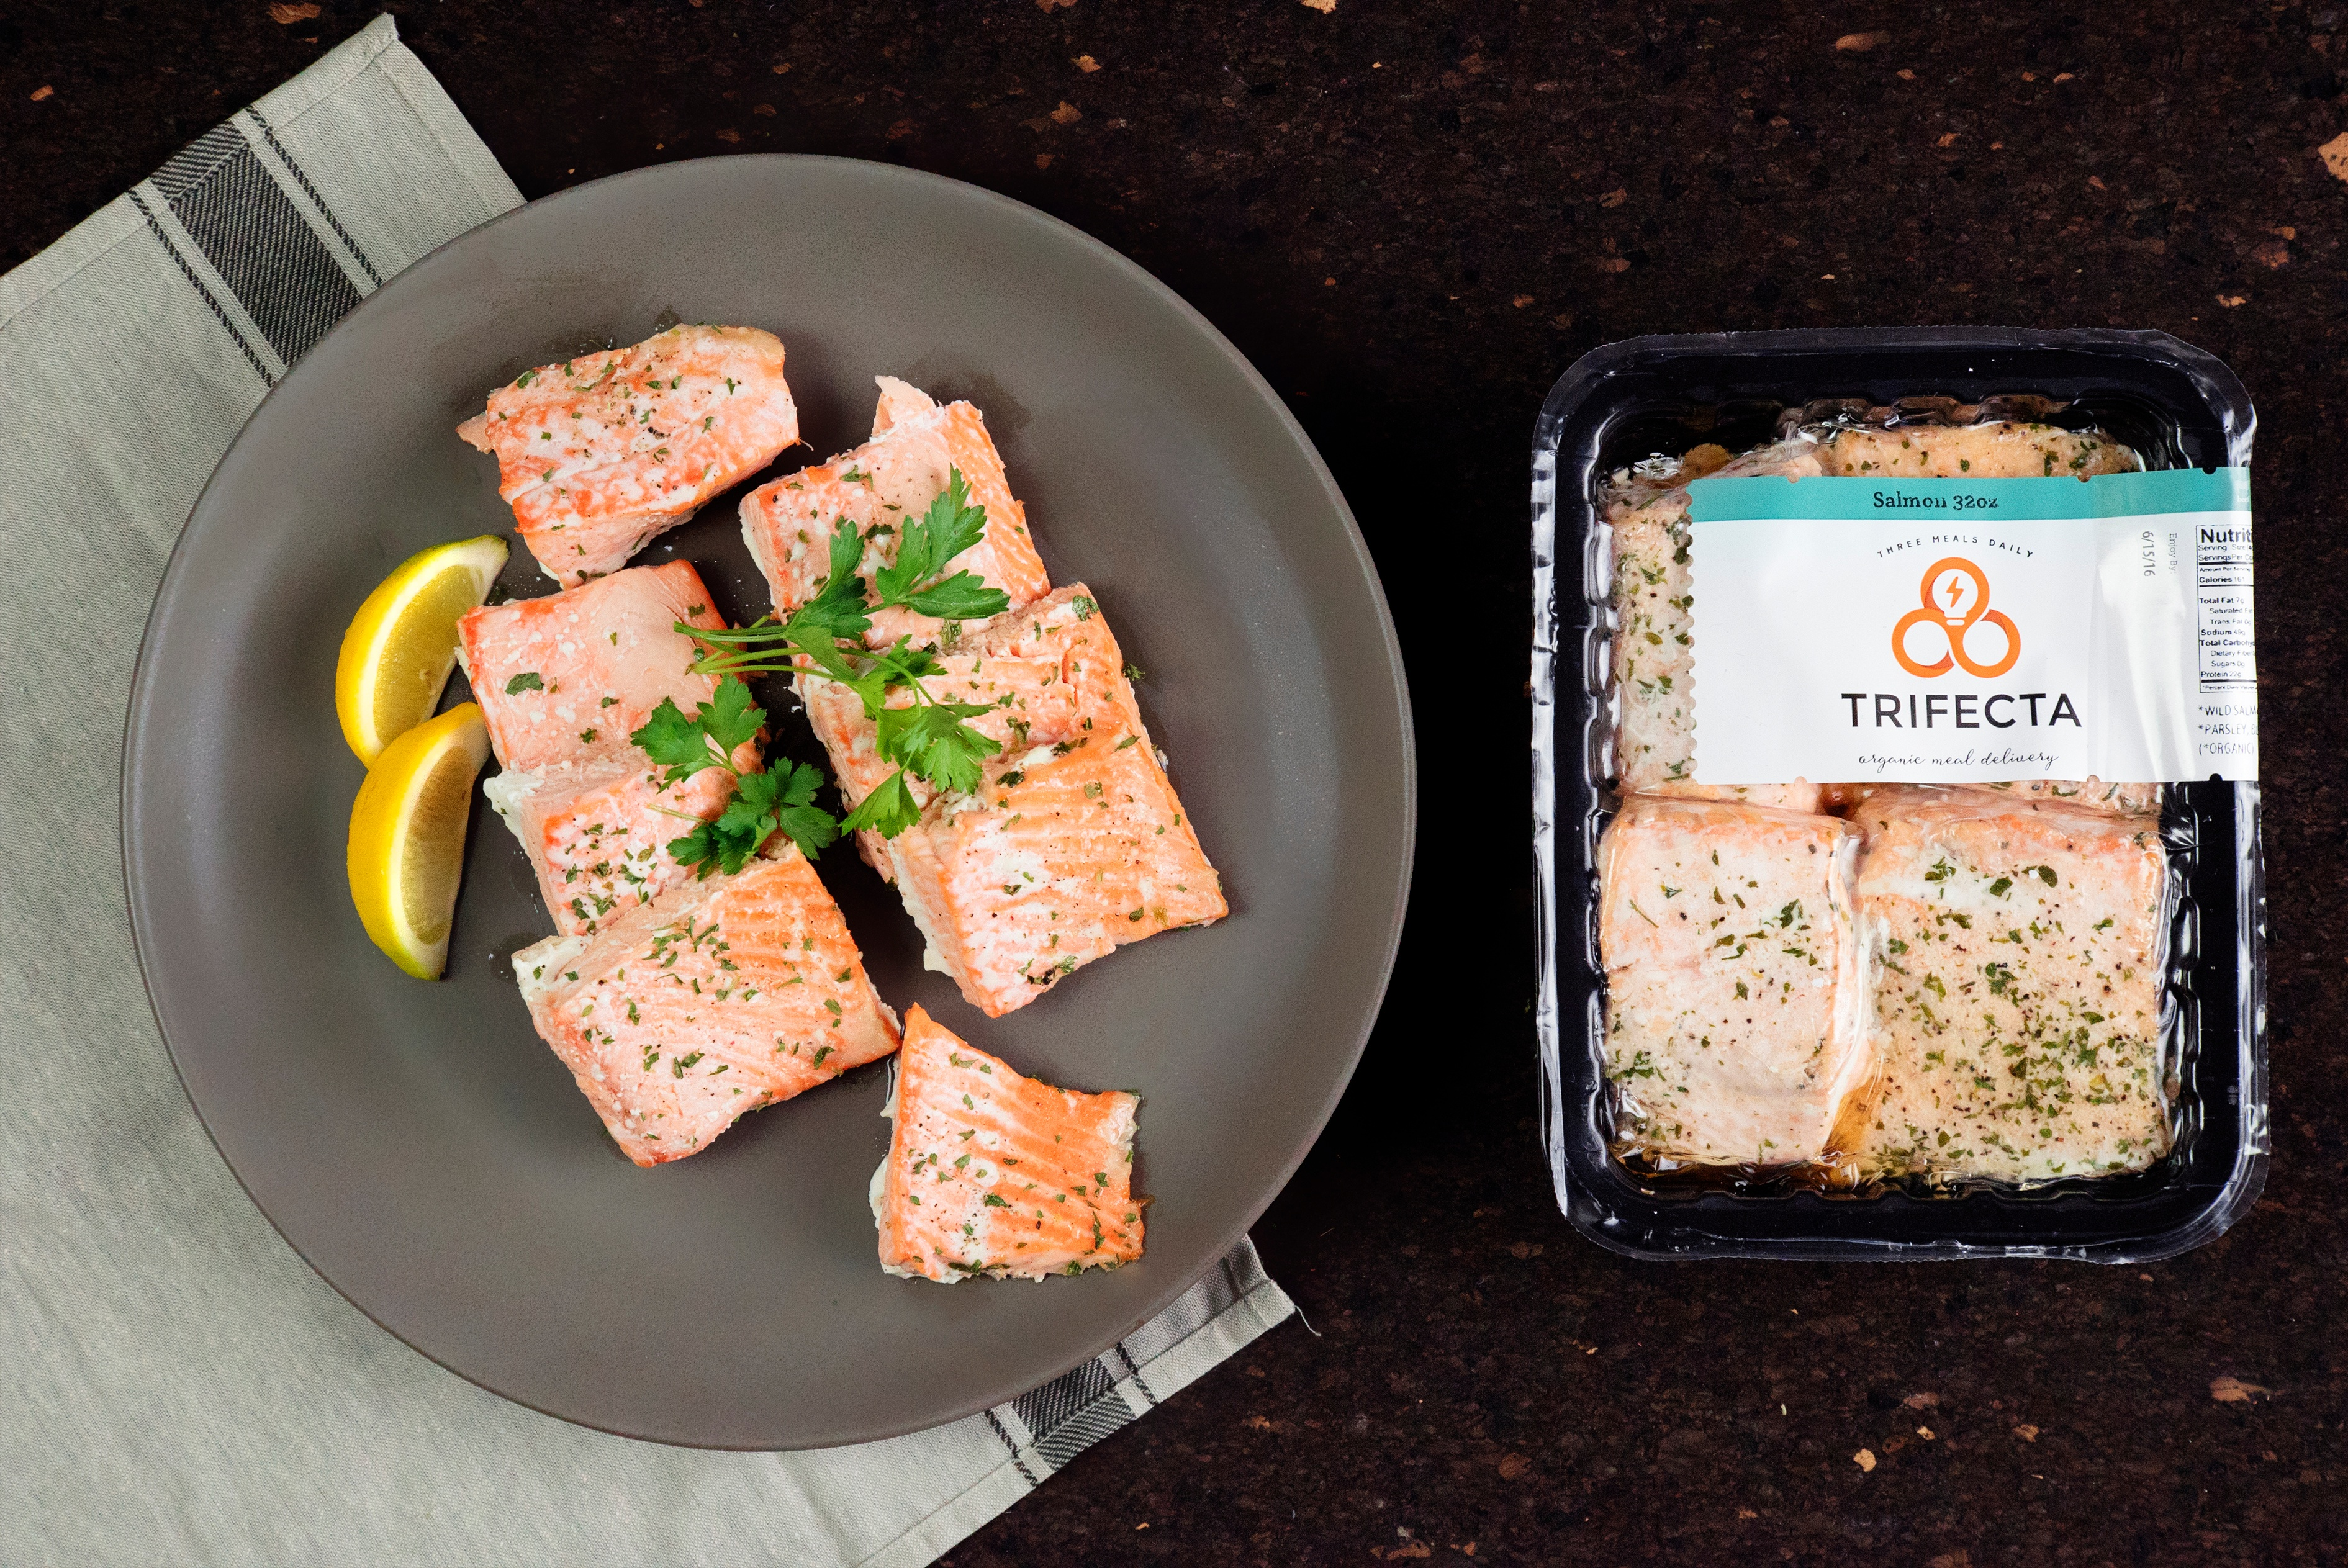 Trifecta salmon in package and on plate